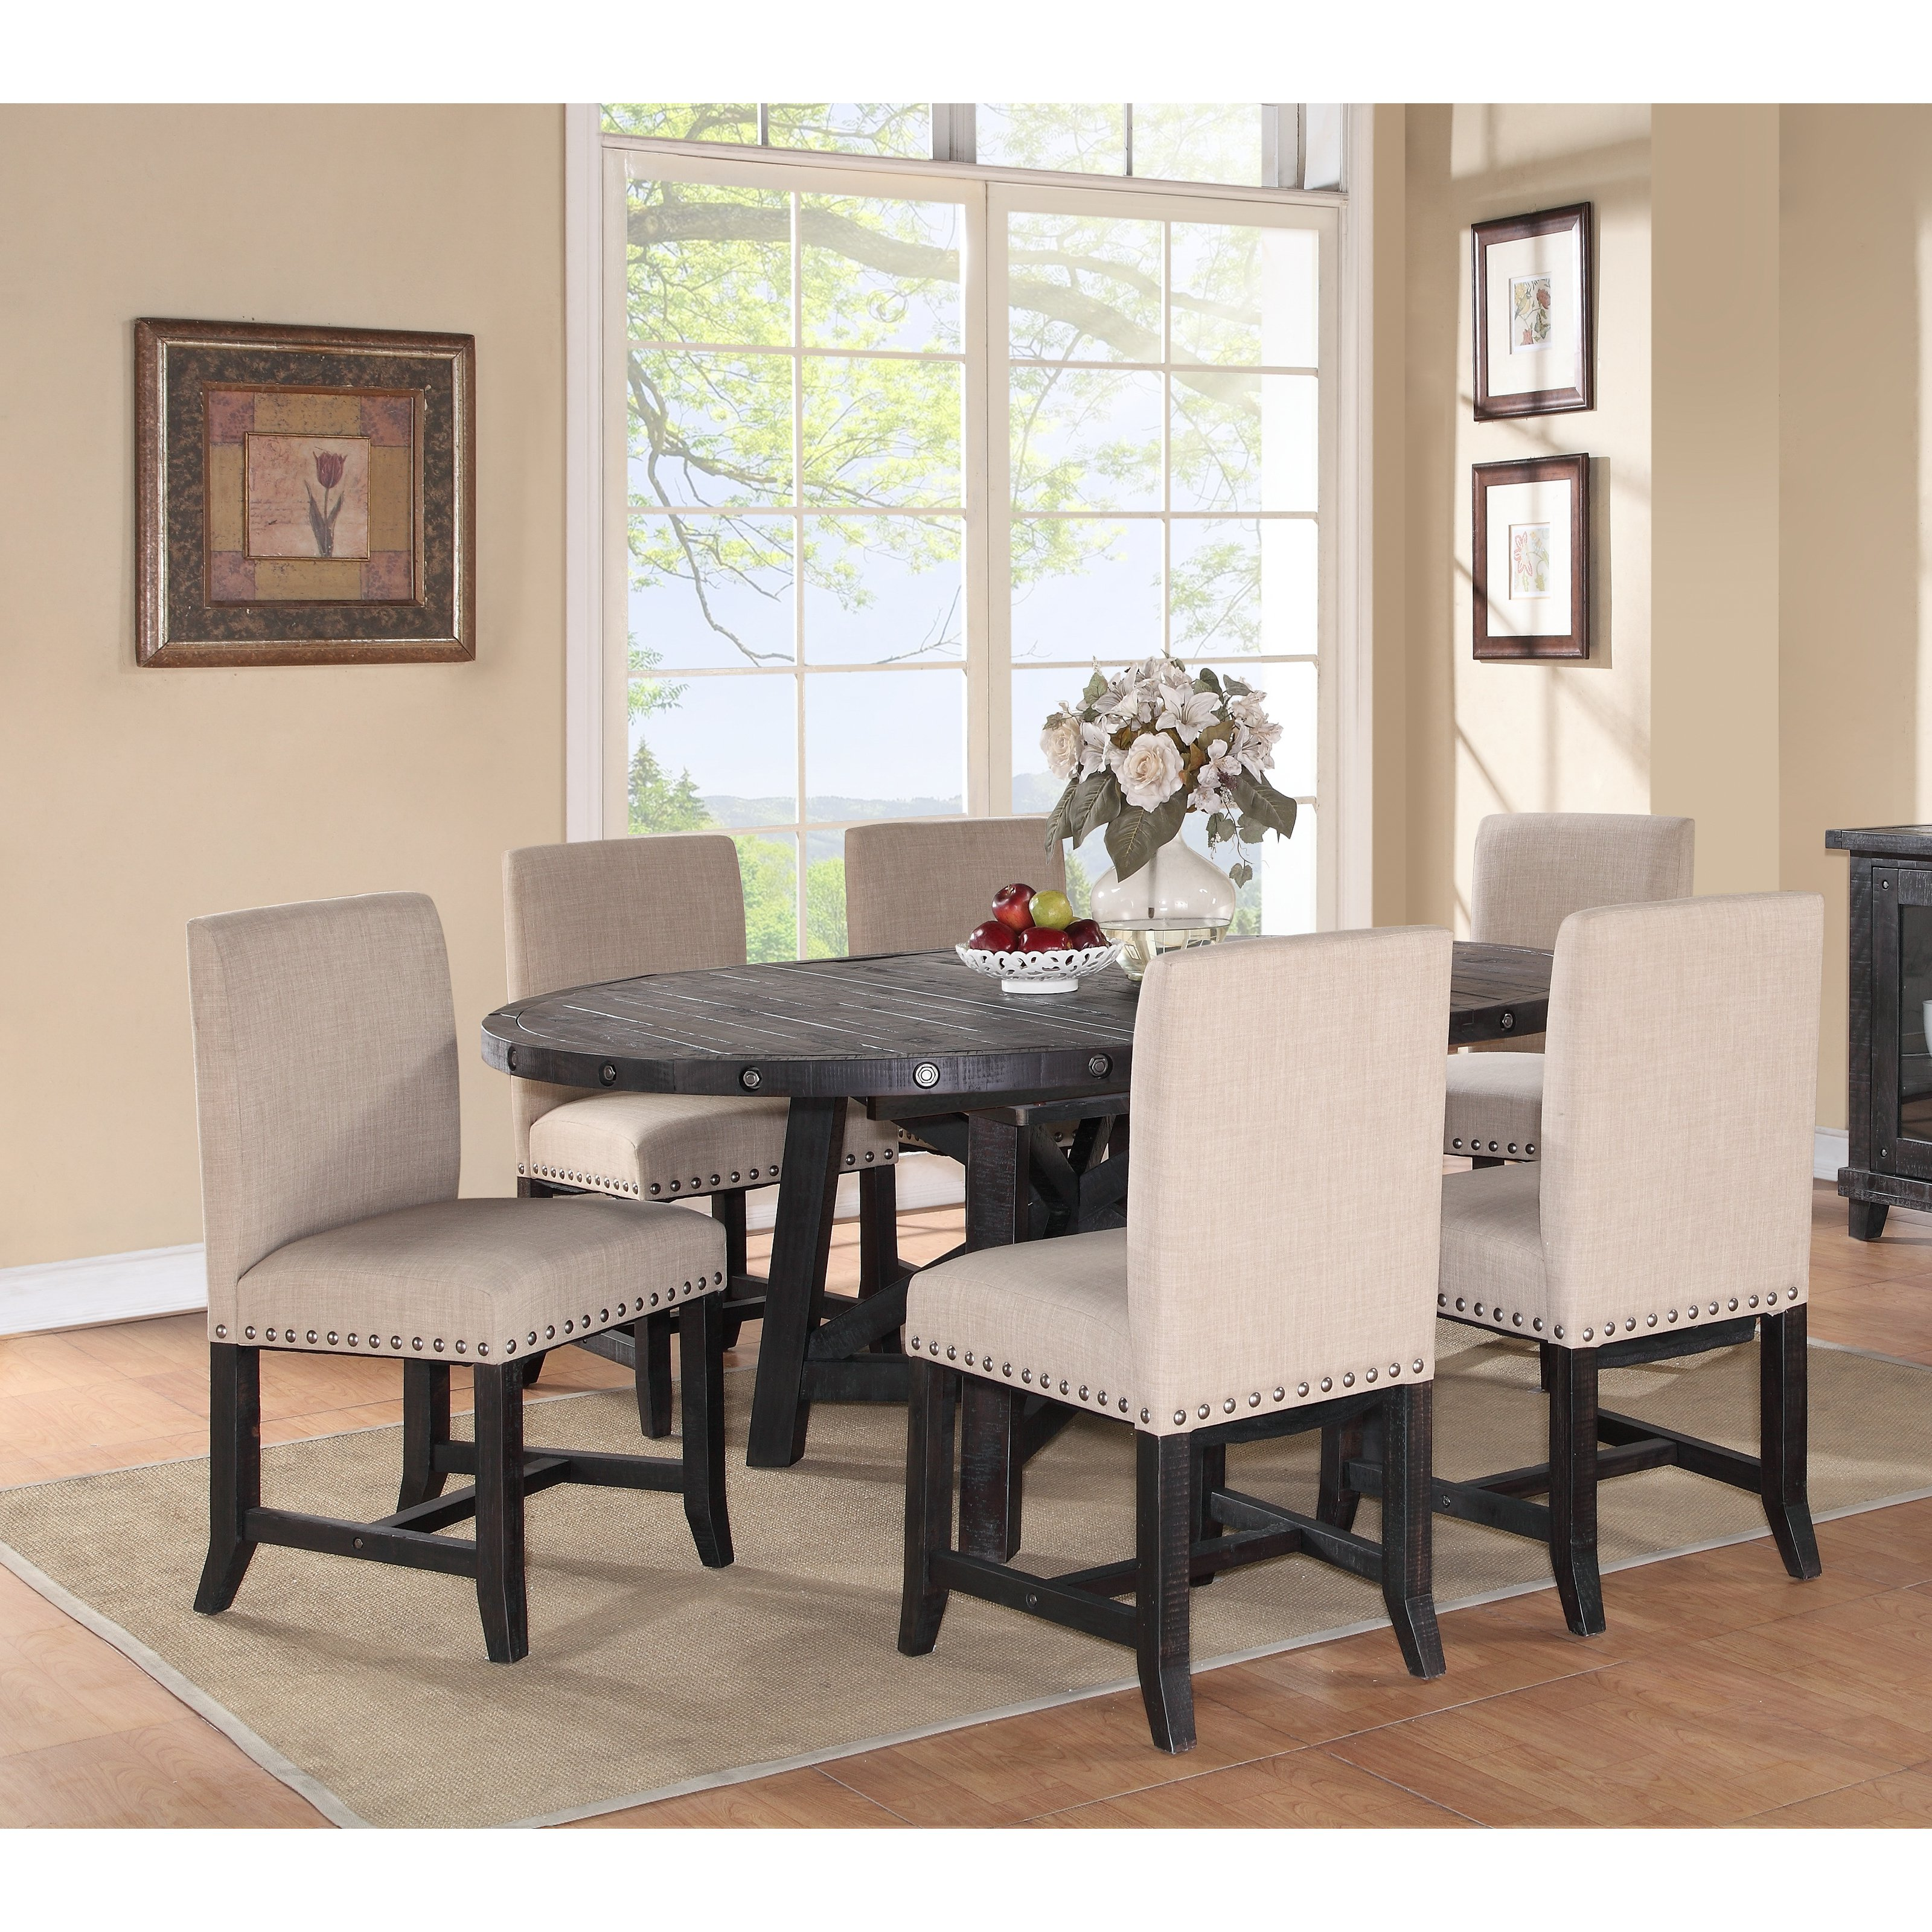 Modus Oval Yosemite 7 Piece Oval Dining Table Set with Upholstered Chairs by Modus Furniture International